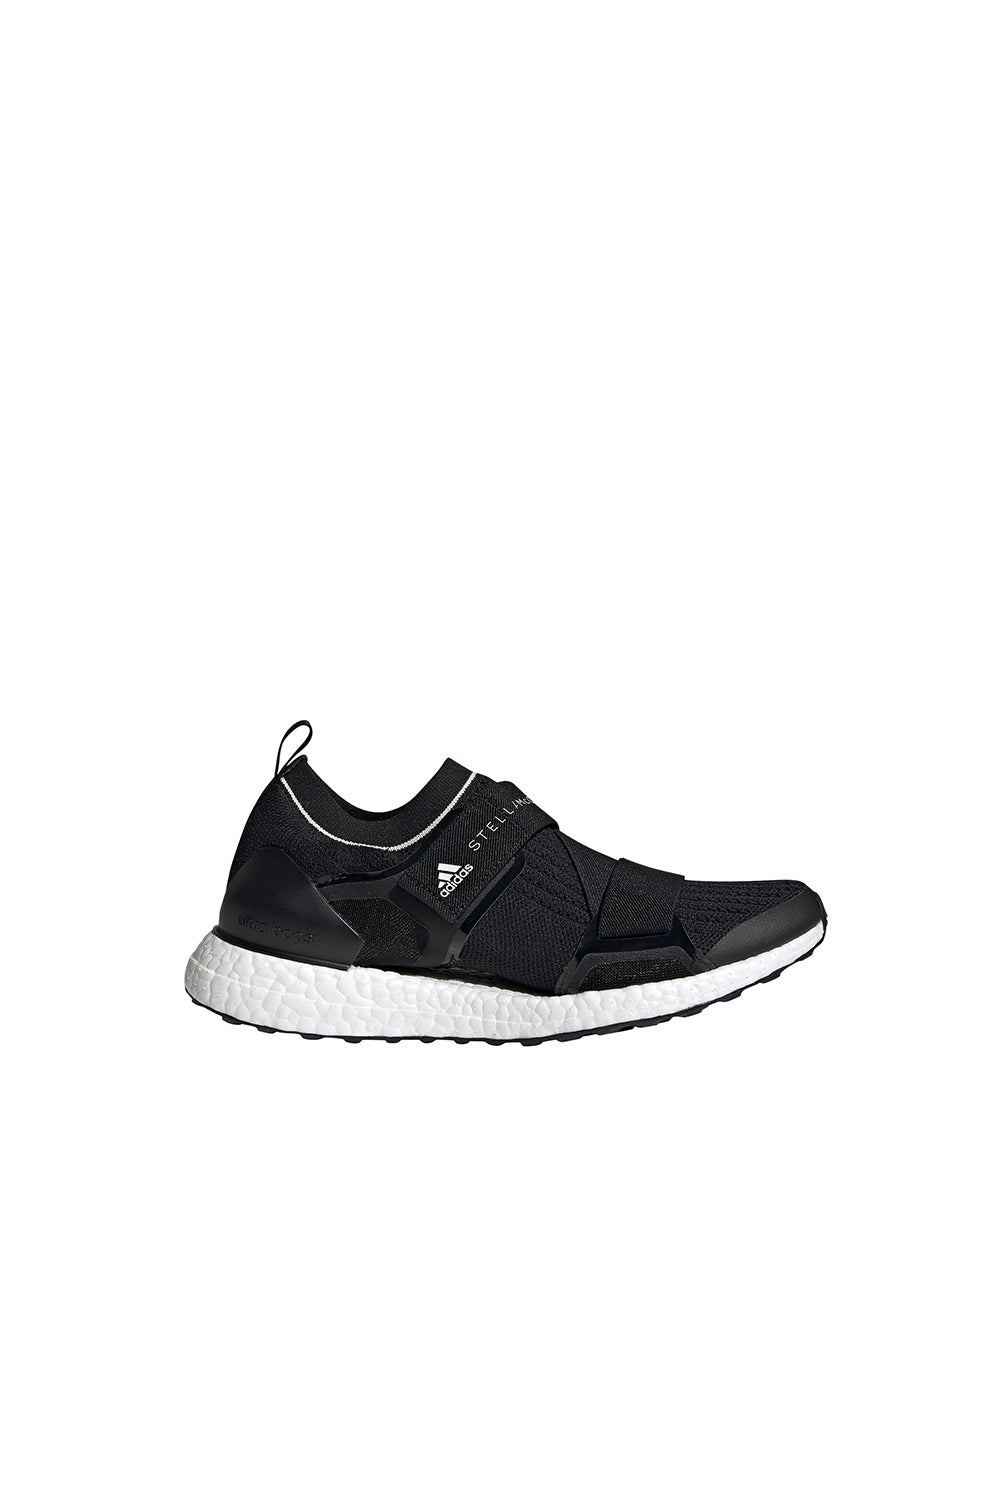 adidas by Stella McCartney UltraBOOST Core Black/Cloud White